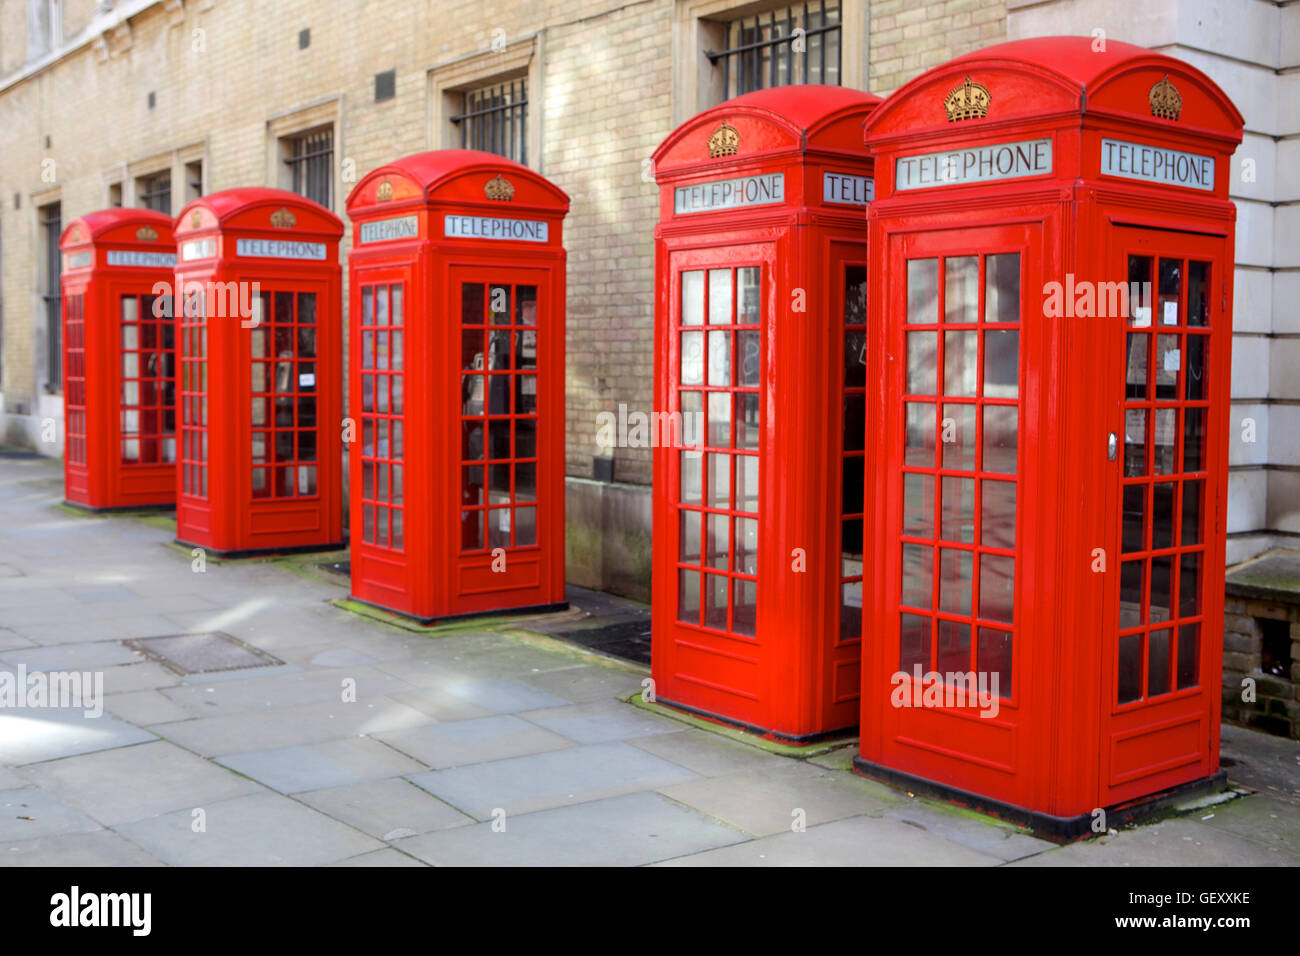 Row of red telephone booths design by Sir Giles Gilbert Scott in a street near Covent Garden. - Stock Image